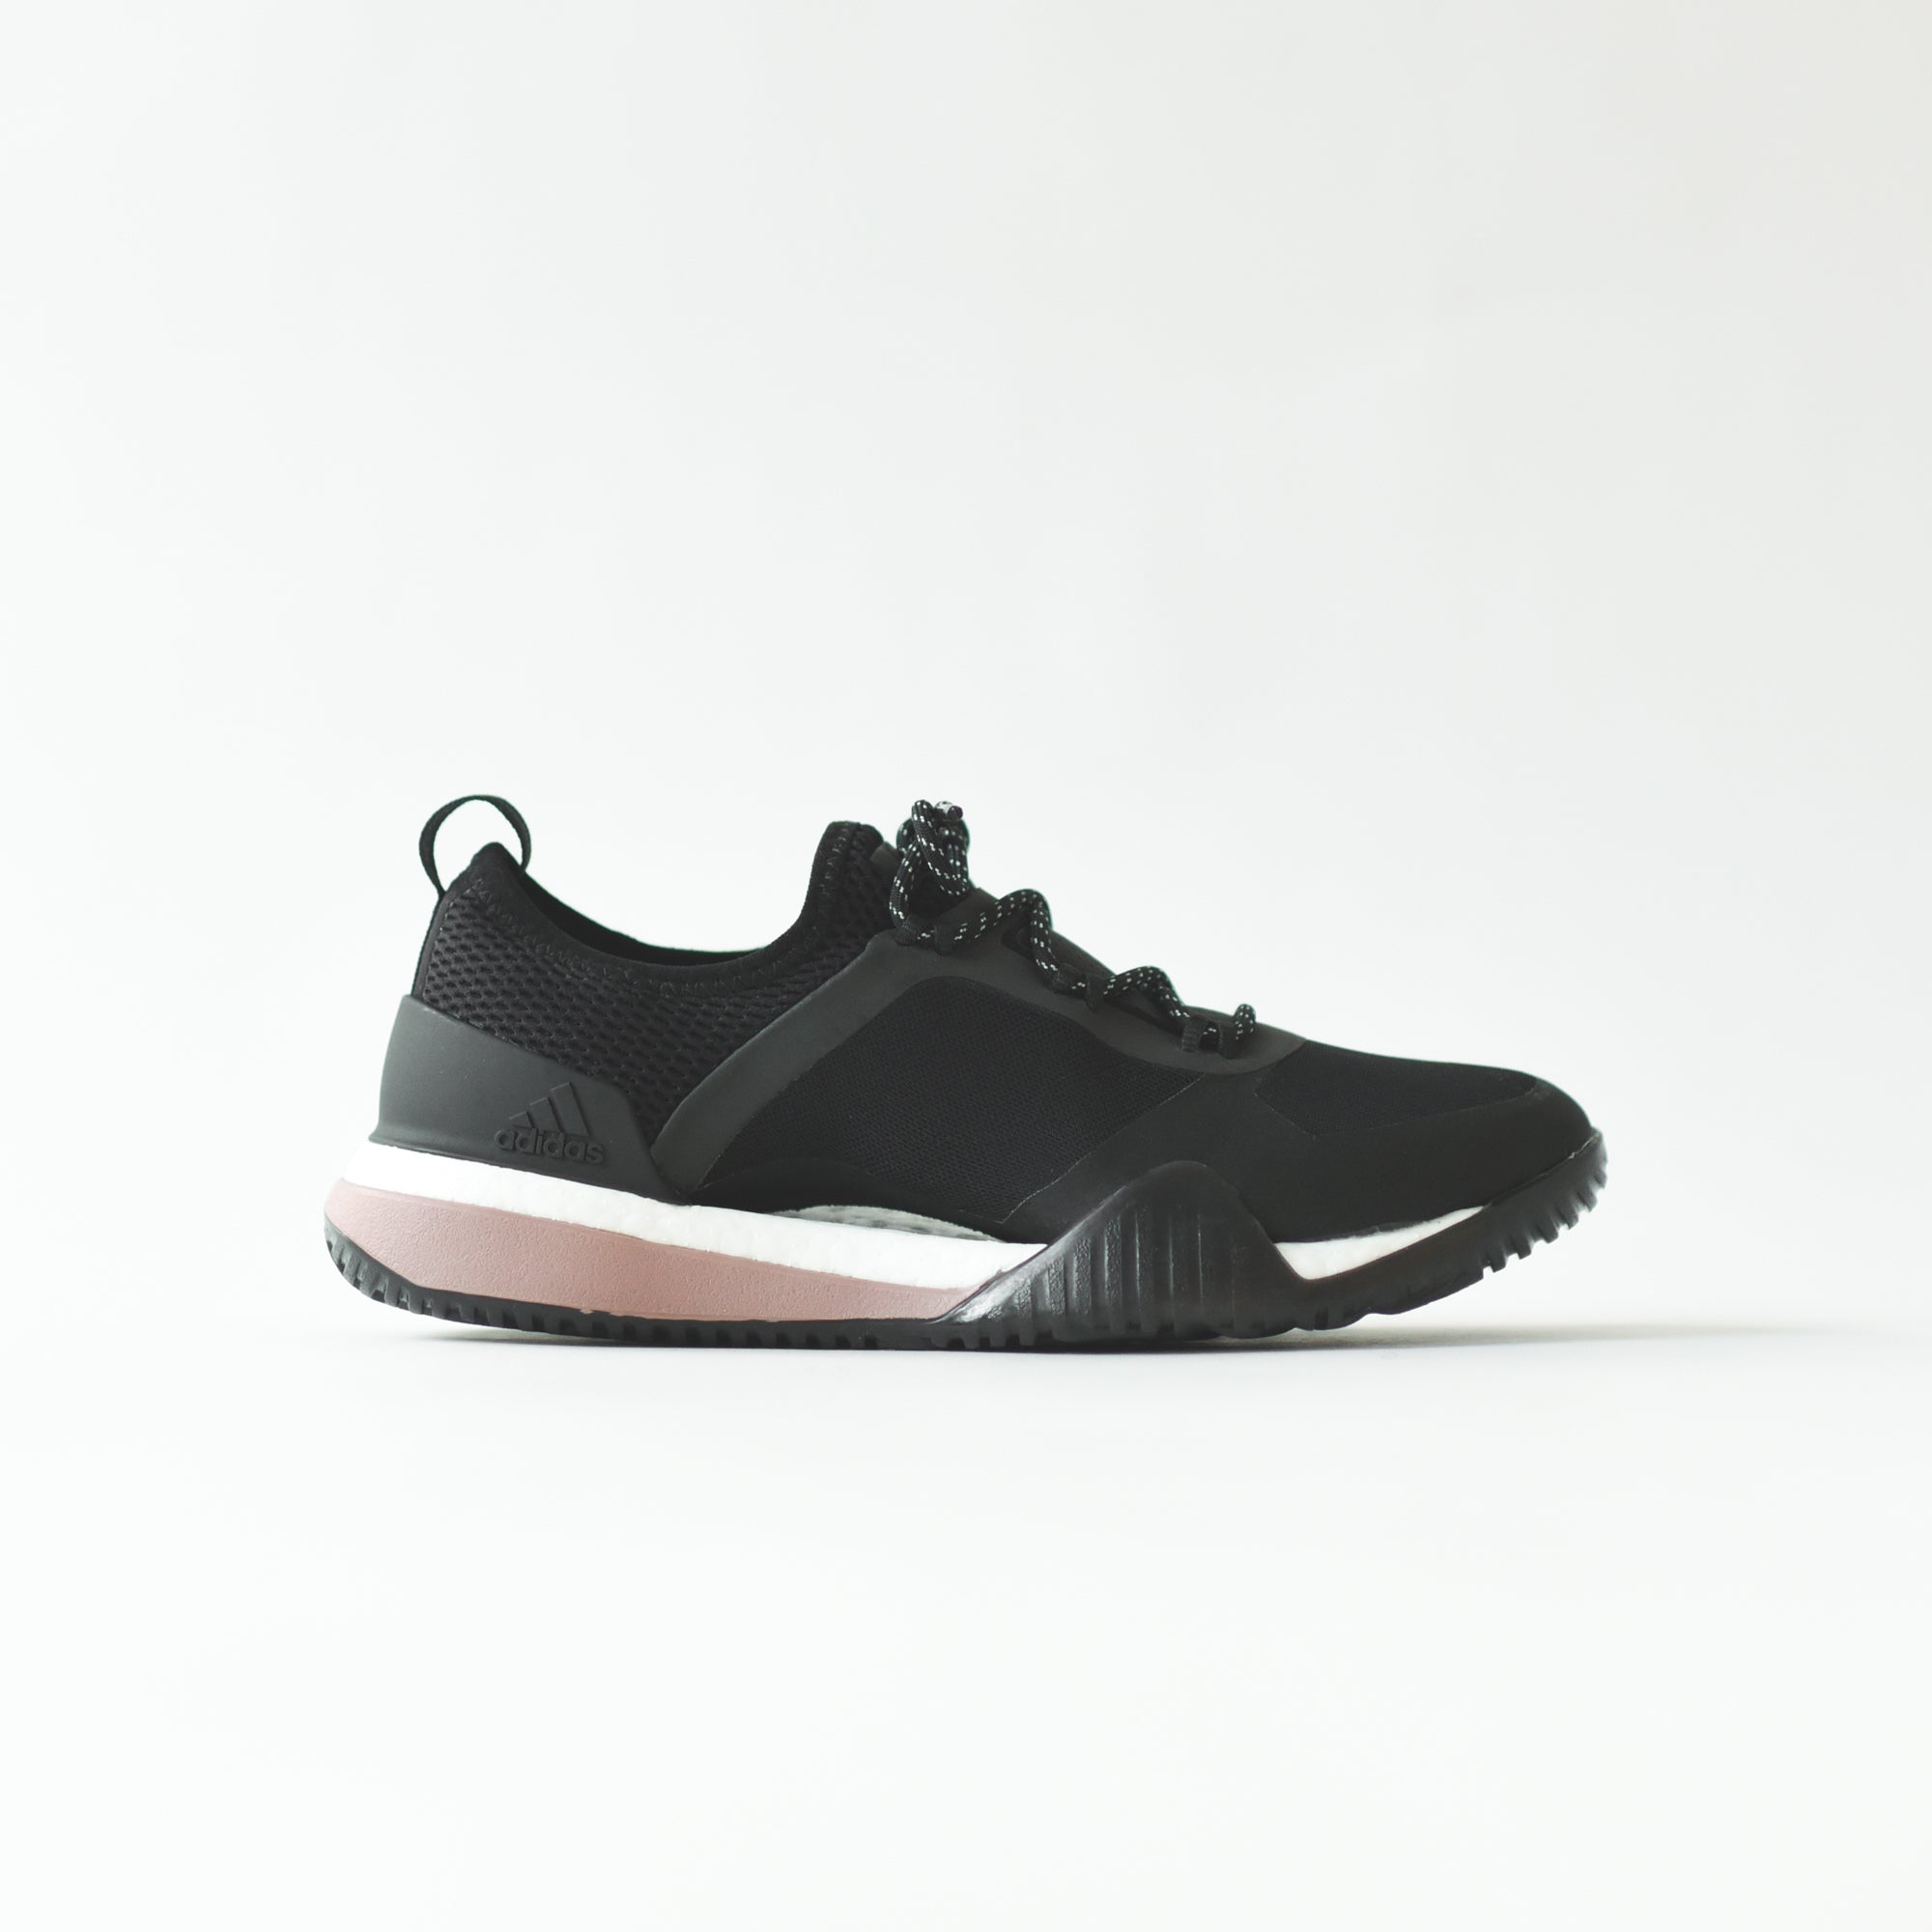 adidas by Stella McCartney WMNS PureBoost x TR 3.0 - Black / Smoked Pink / Noble Maroon